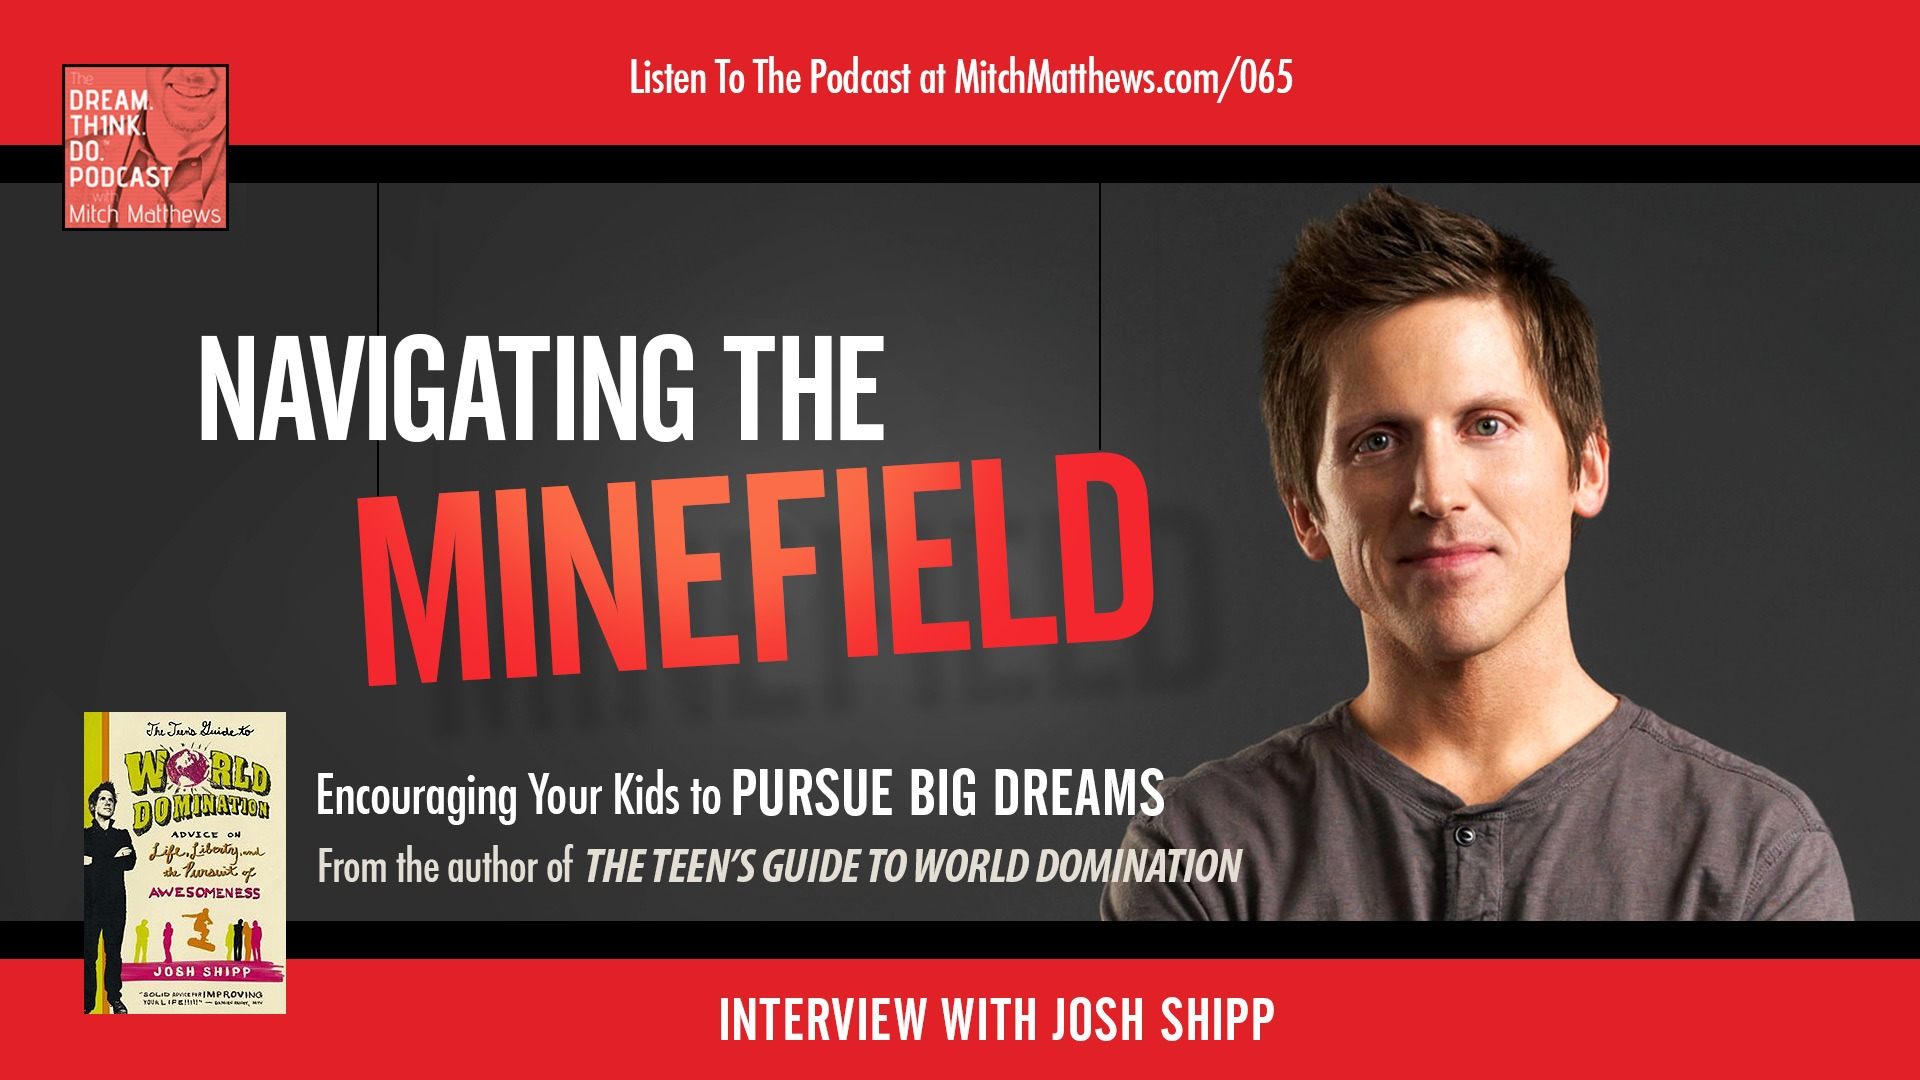 Josh Shipp | Navigating the minefield! - Encouraging your kids to pursue big dreams!